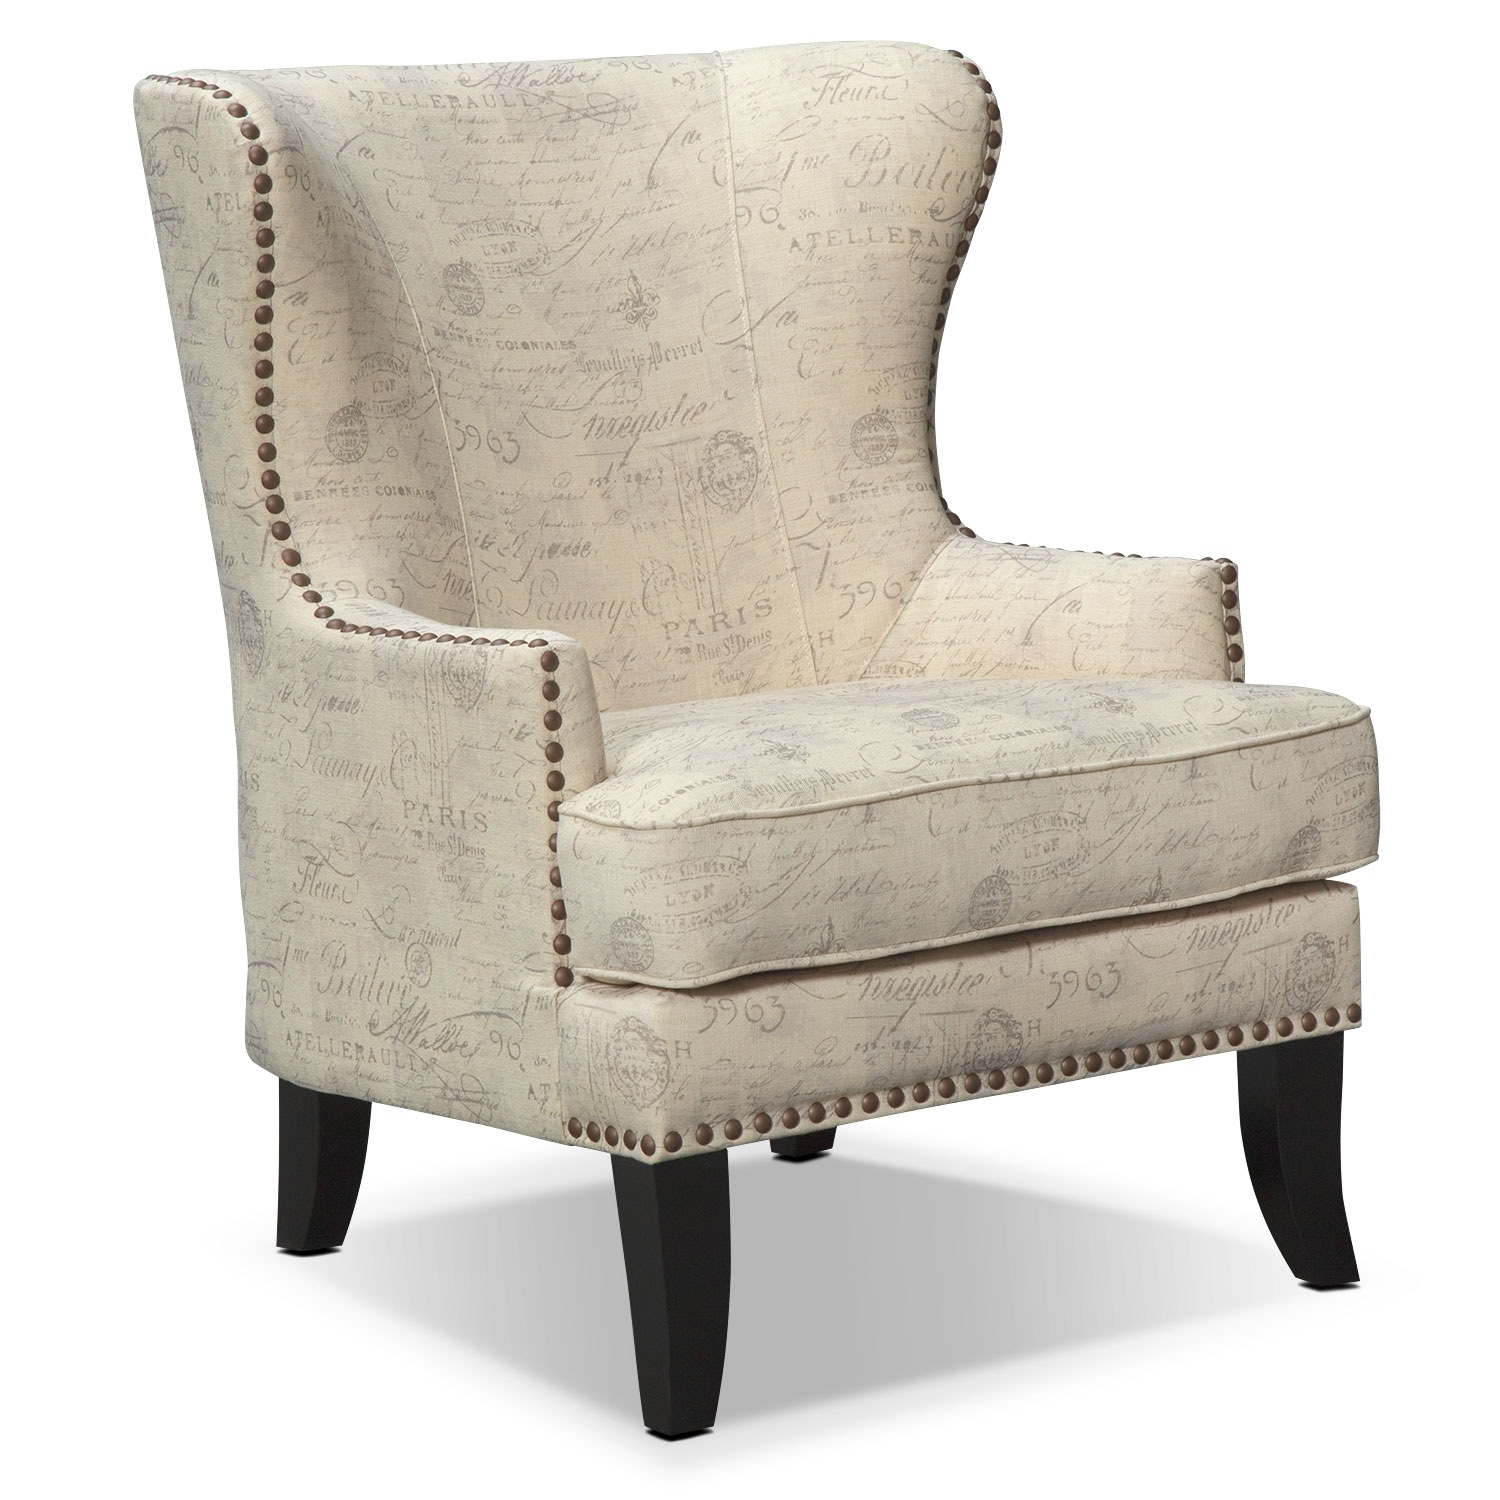 Marseille Accent Chair   Cream And Black Part 43